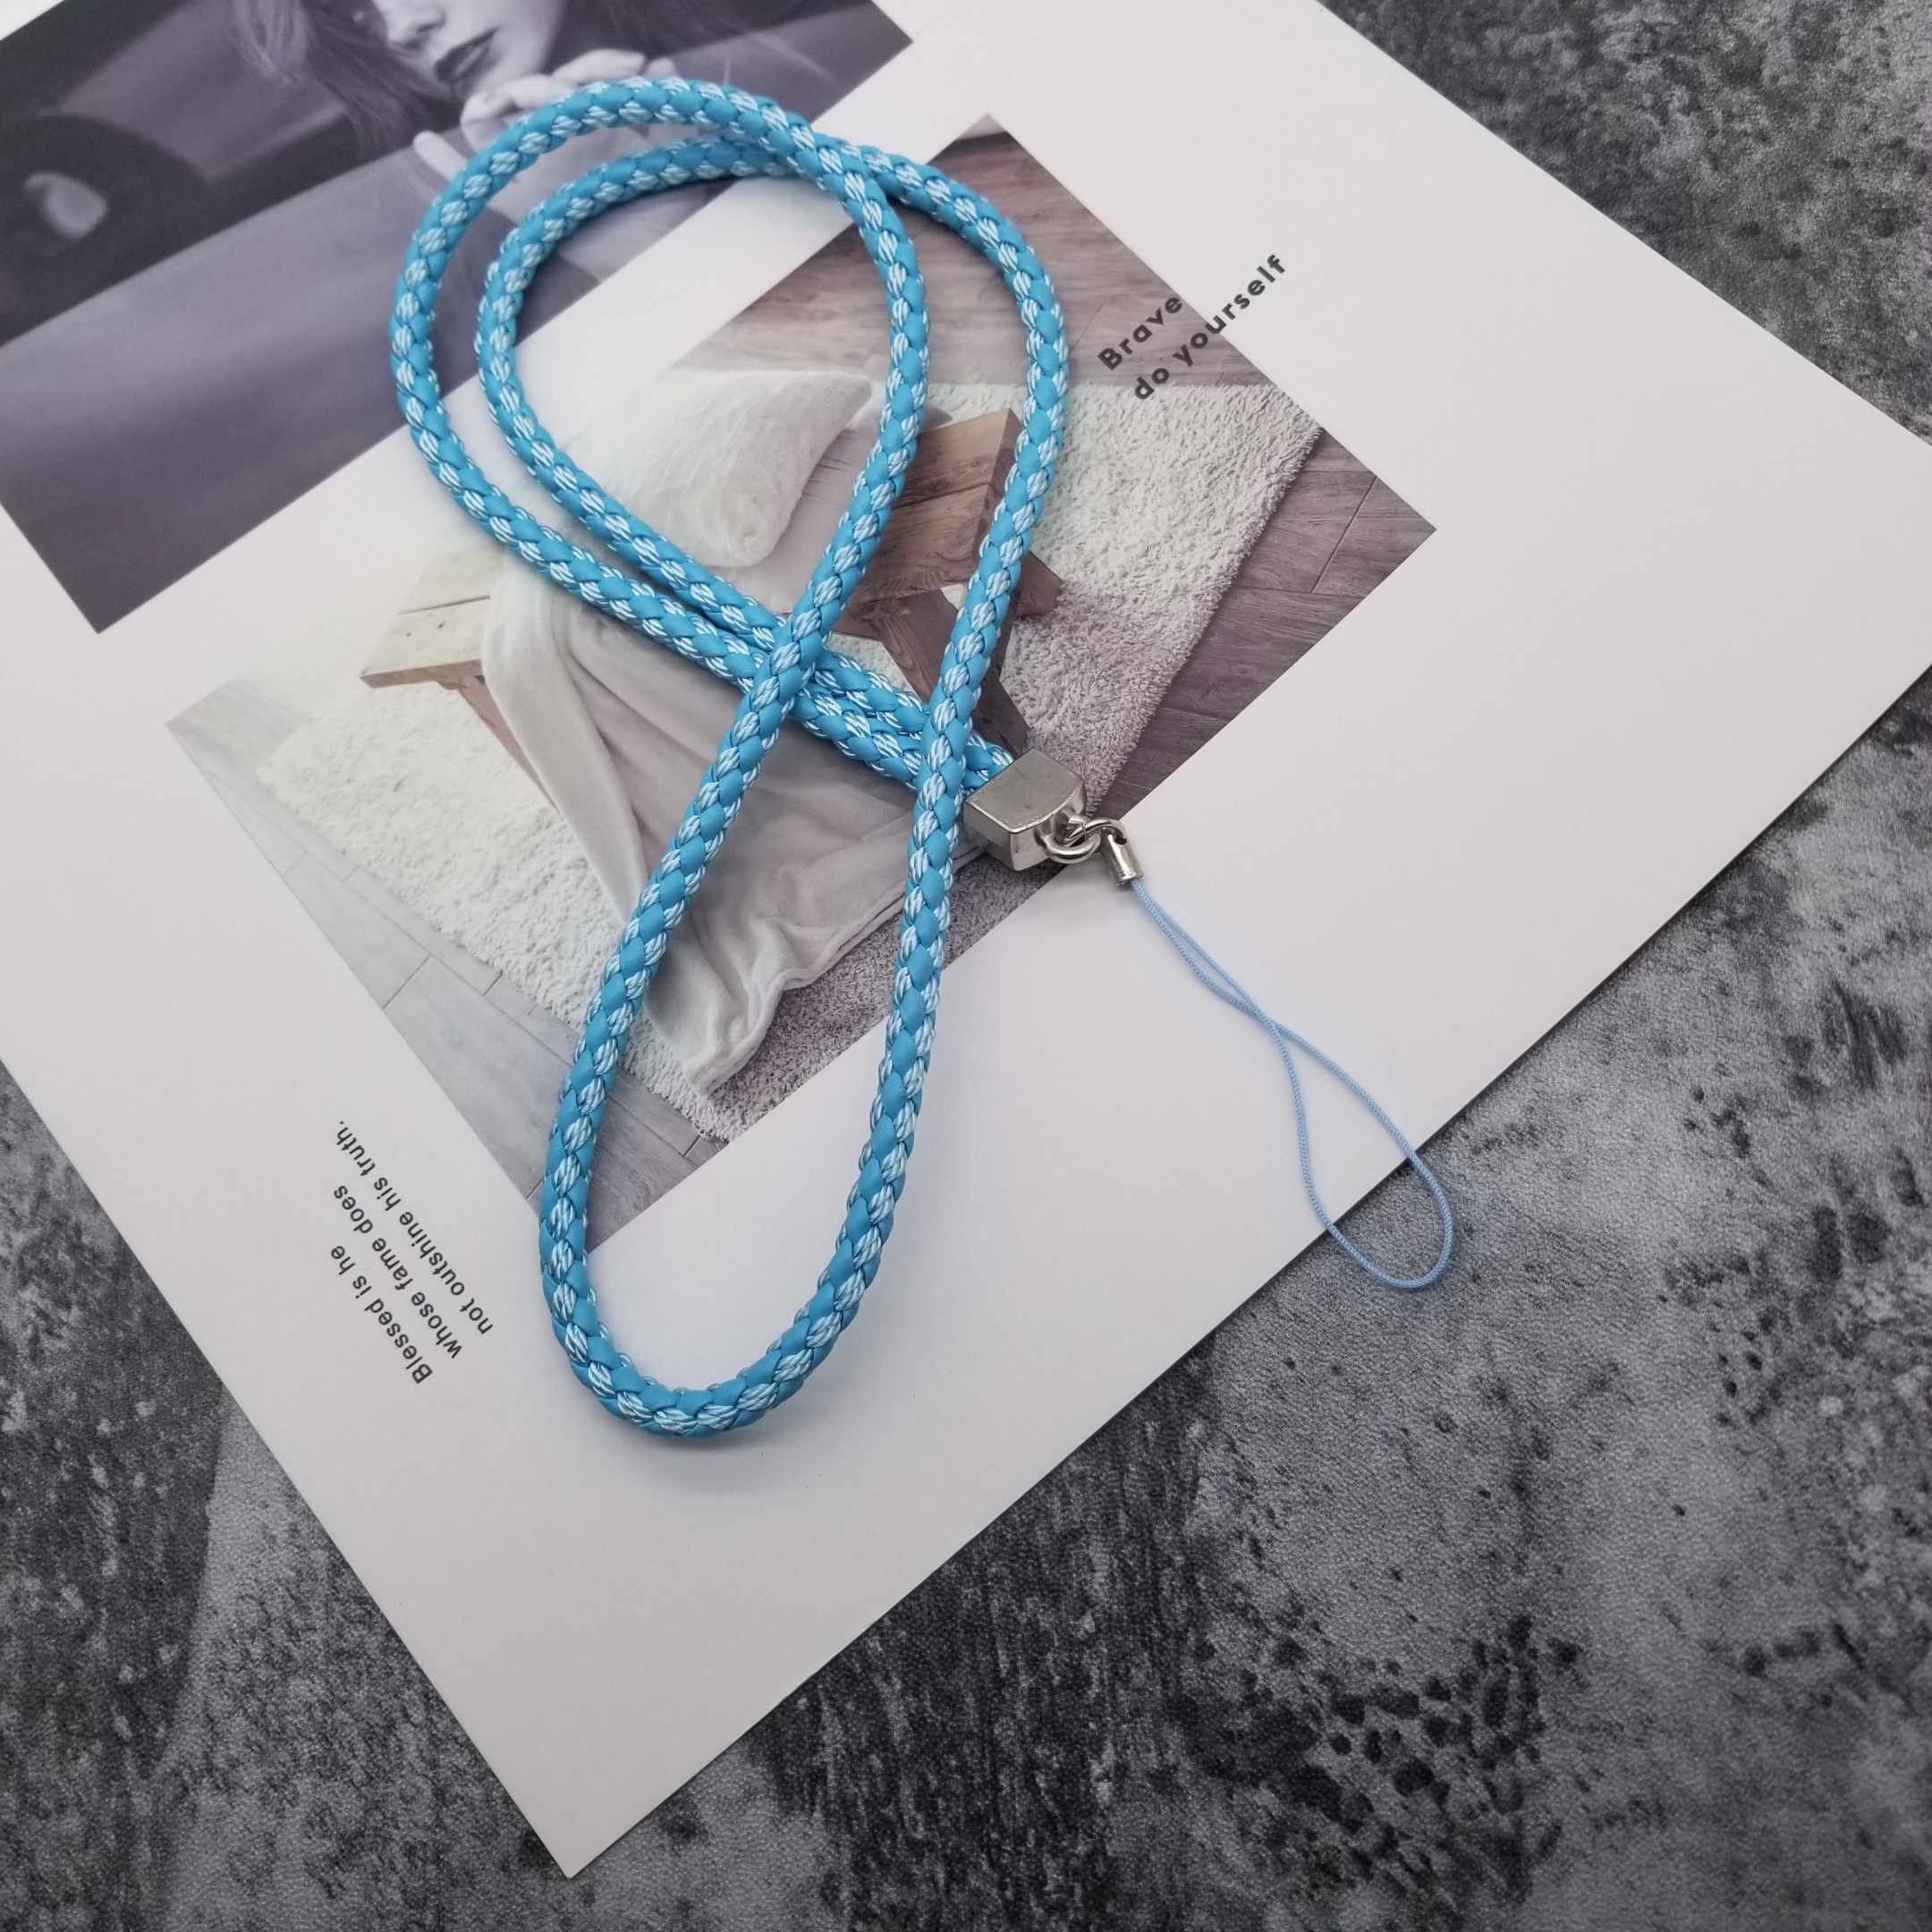 10Pcs/lot PU Braided Mobile Phone Lanyard Fashion Rope For Key Lanyard Mobile Keychains Neck Strap Anti-theft Mobile Phone Chain